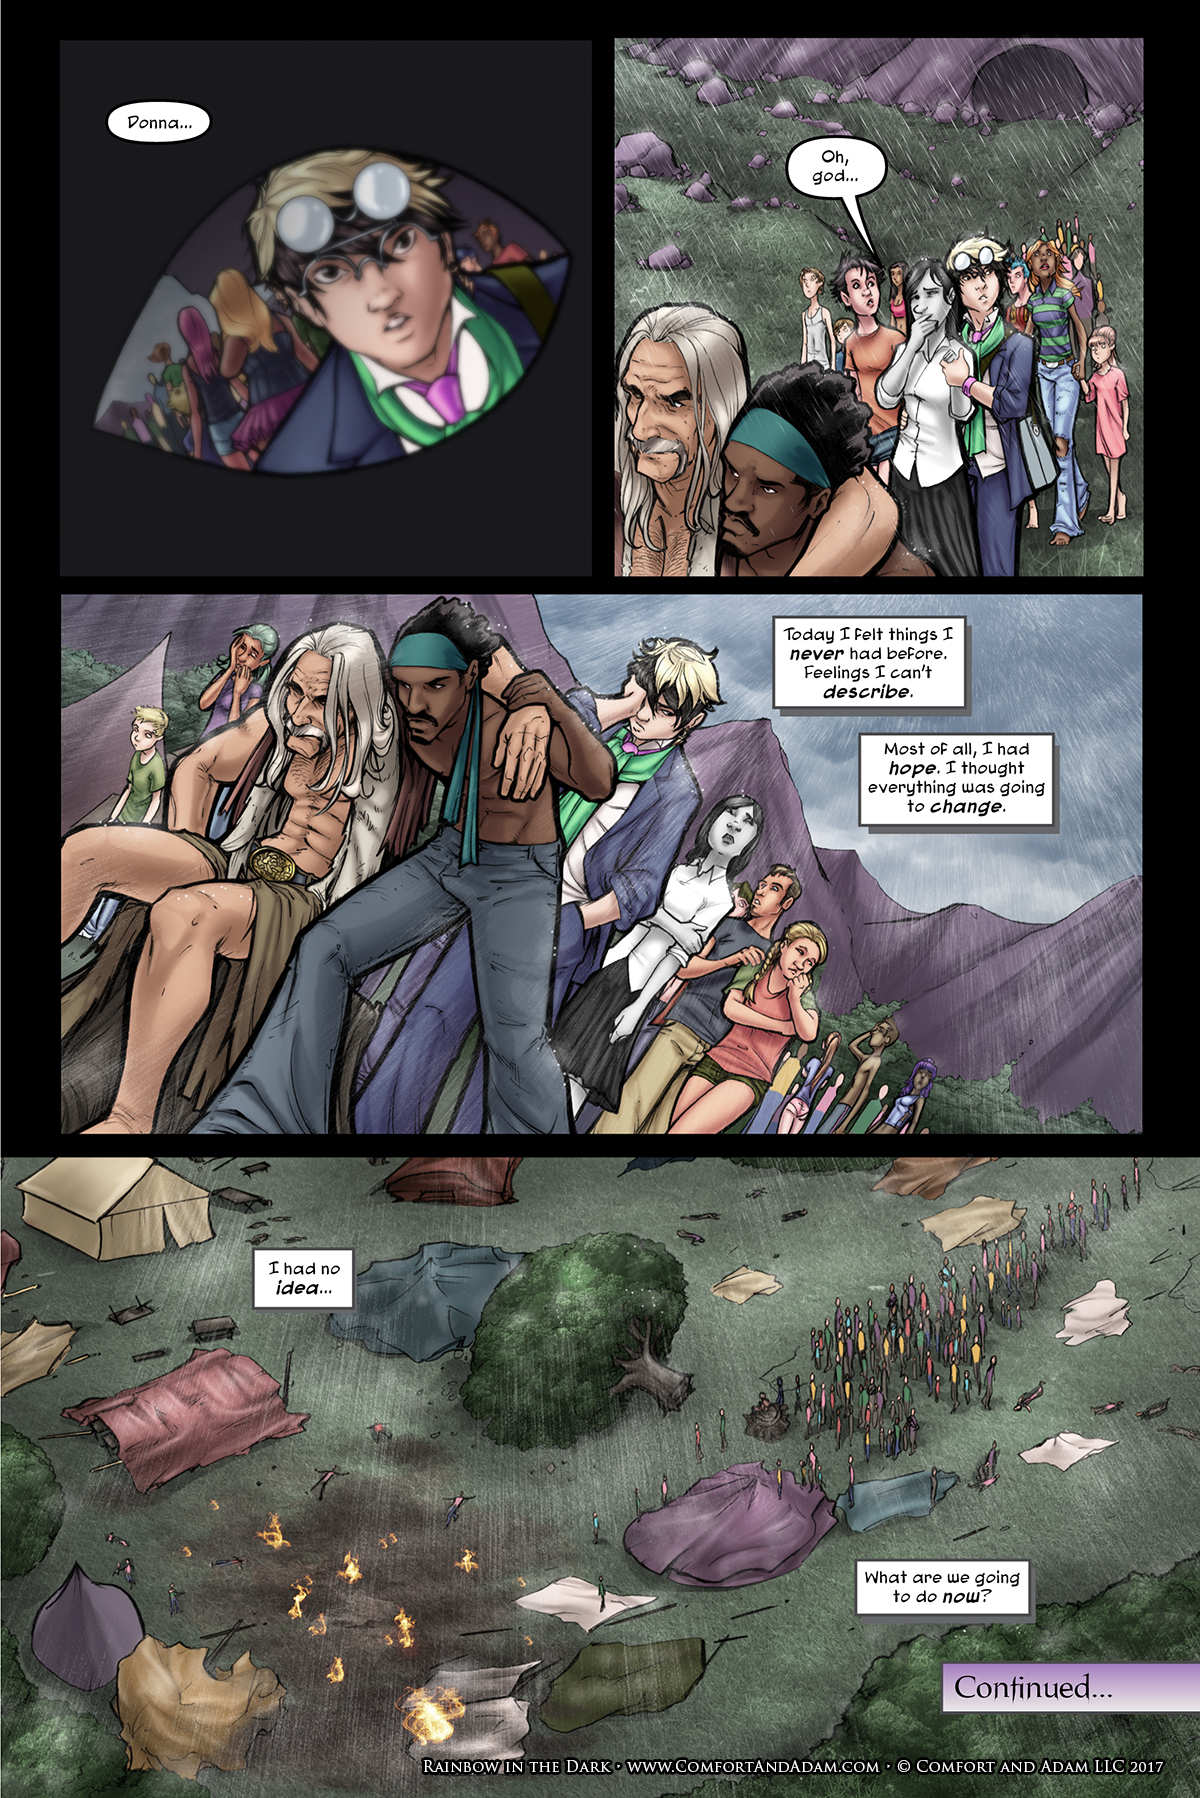 Rainbow in the Dark #2, pg. 27: The Aftermath